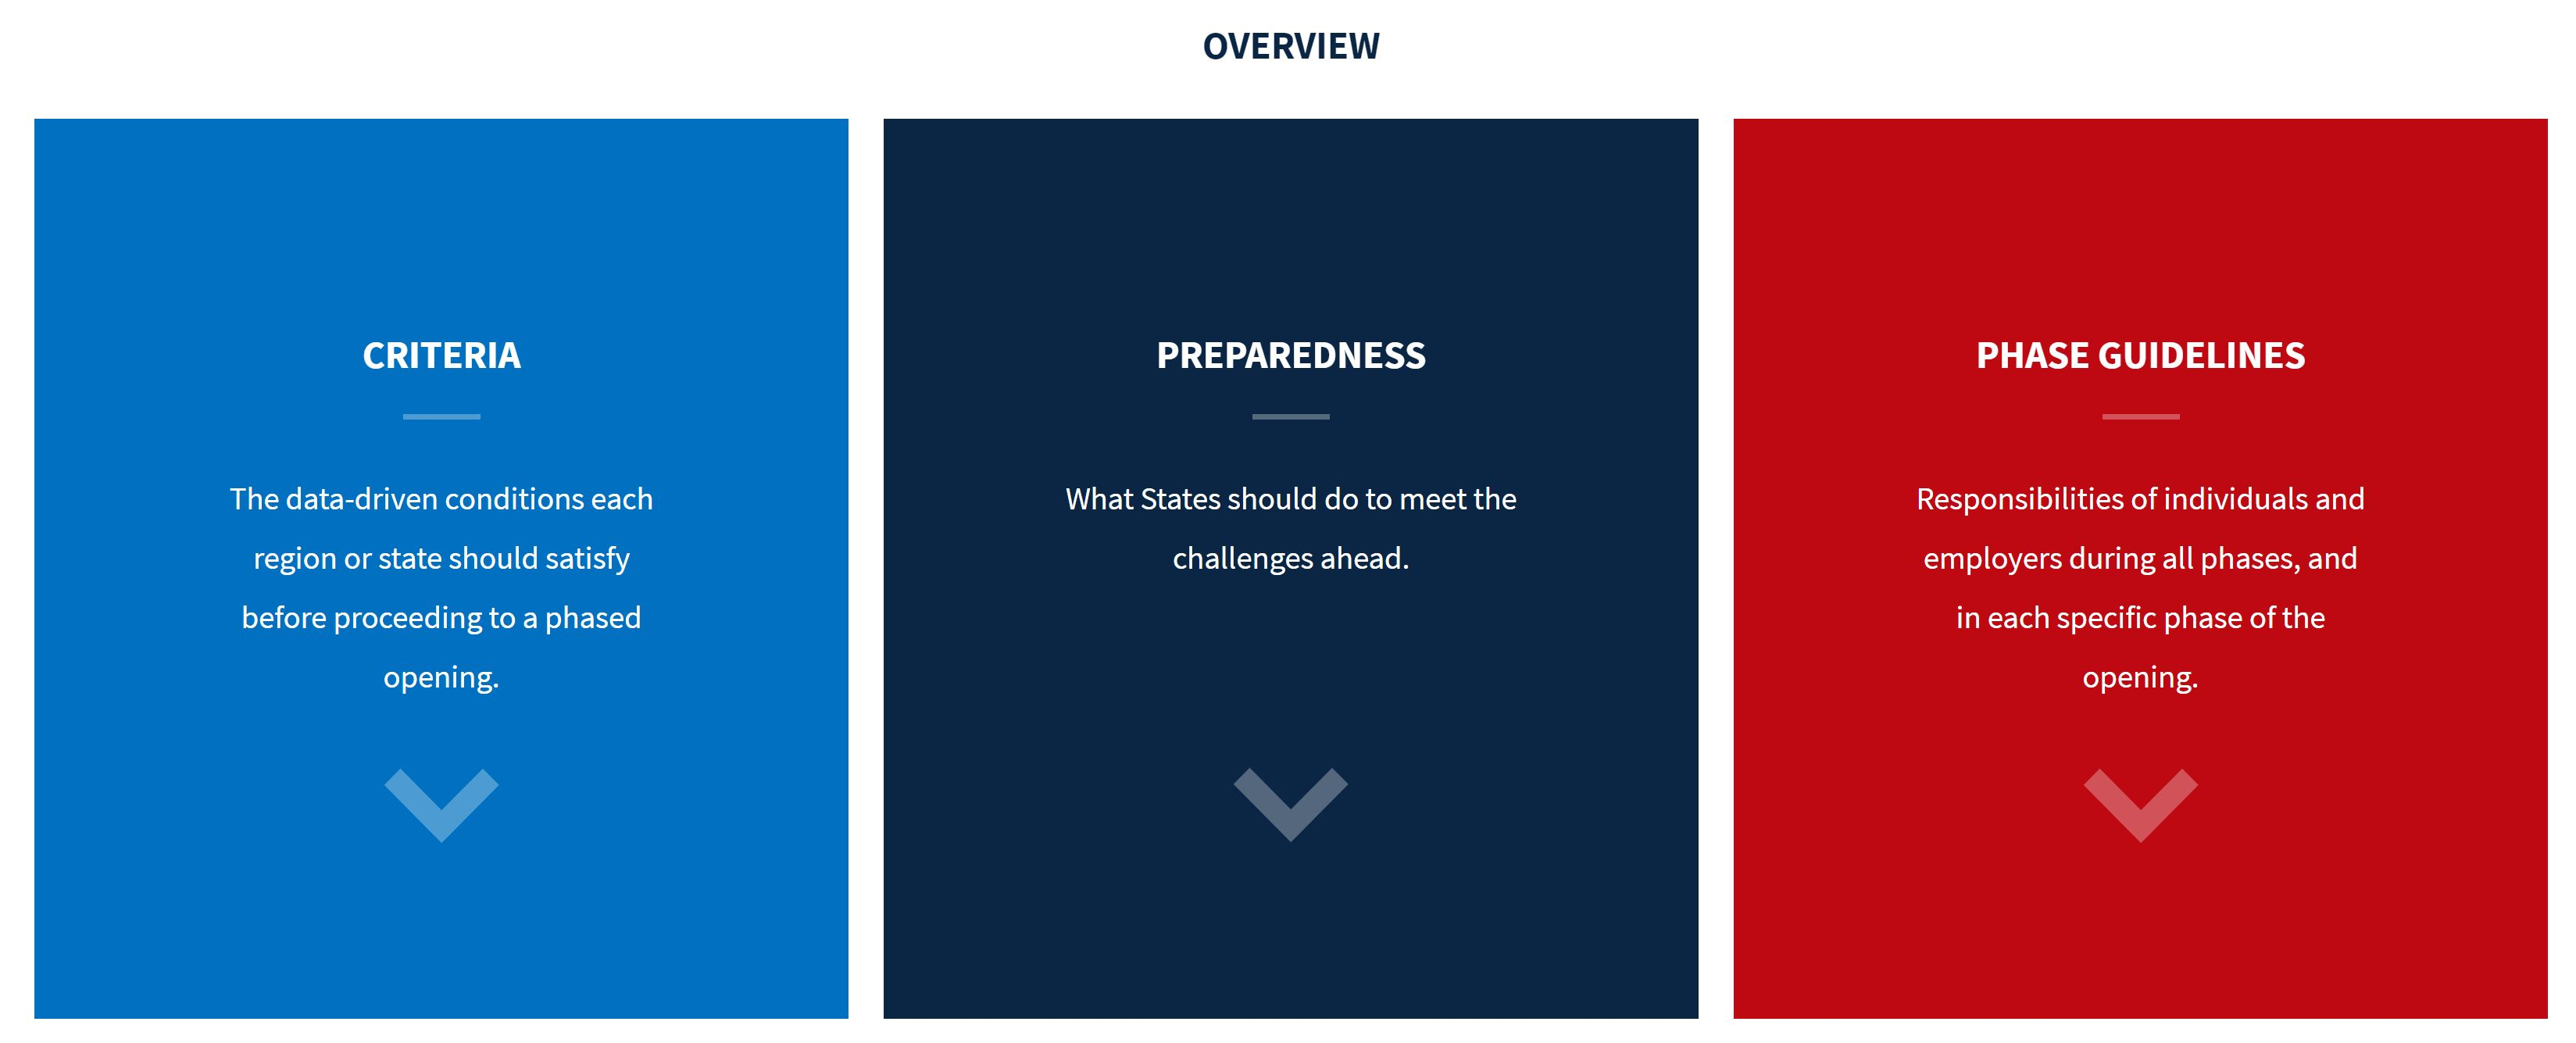 Coronavirus COVID-19_2020 05 04_President Trumps Guidelines Overview to Opening Up America Again in different phases Phase 1 for states with Phase 2 coming Hoey Team eXp Realty